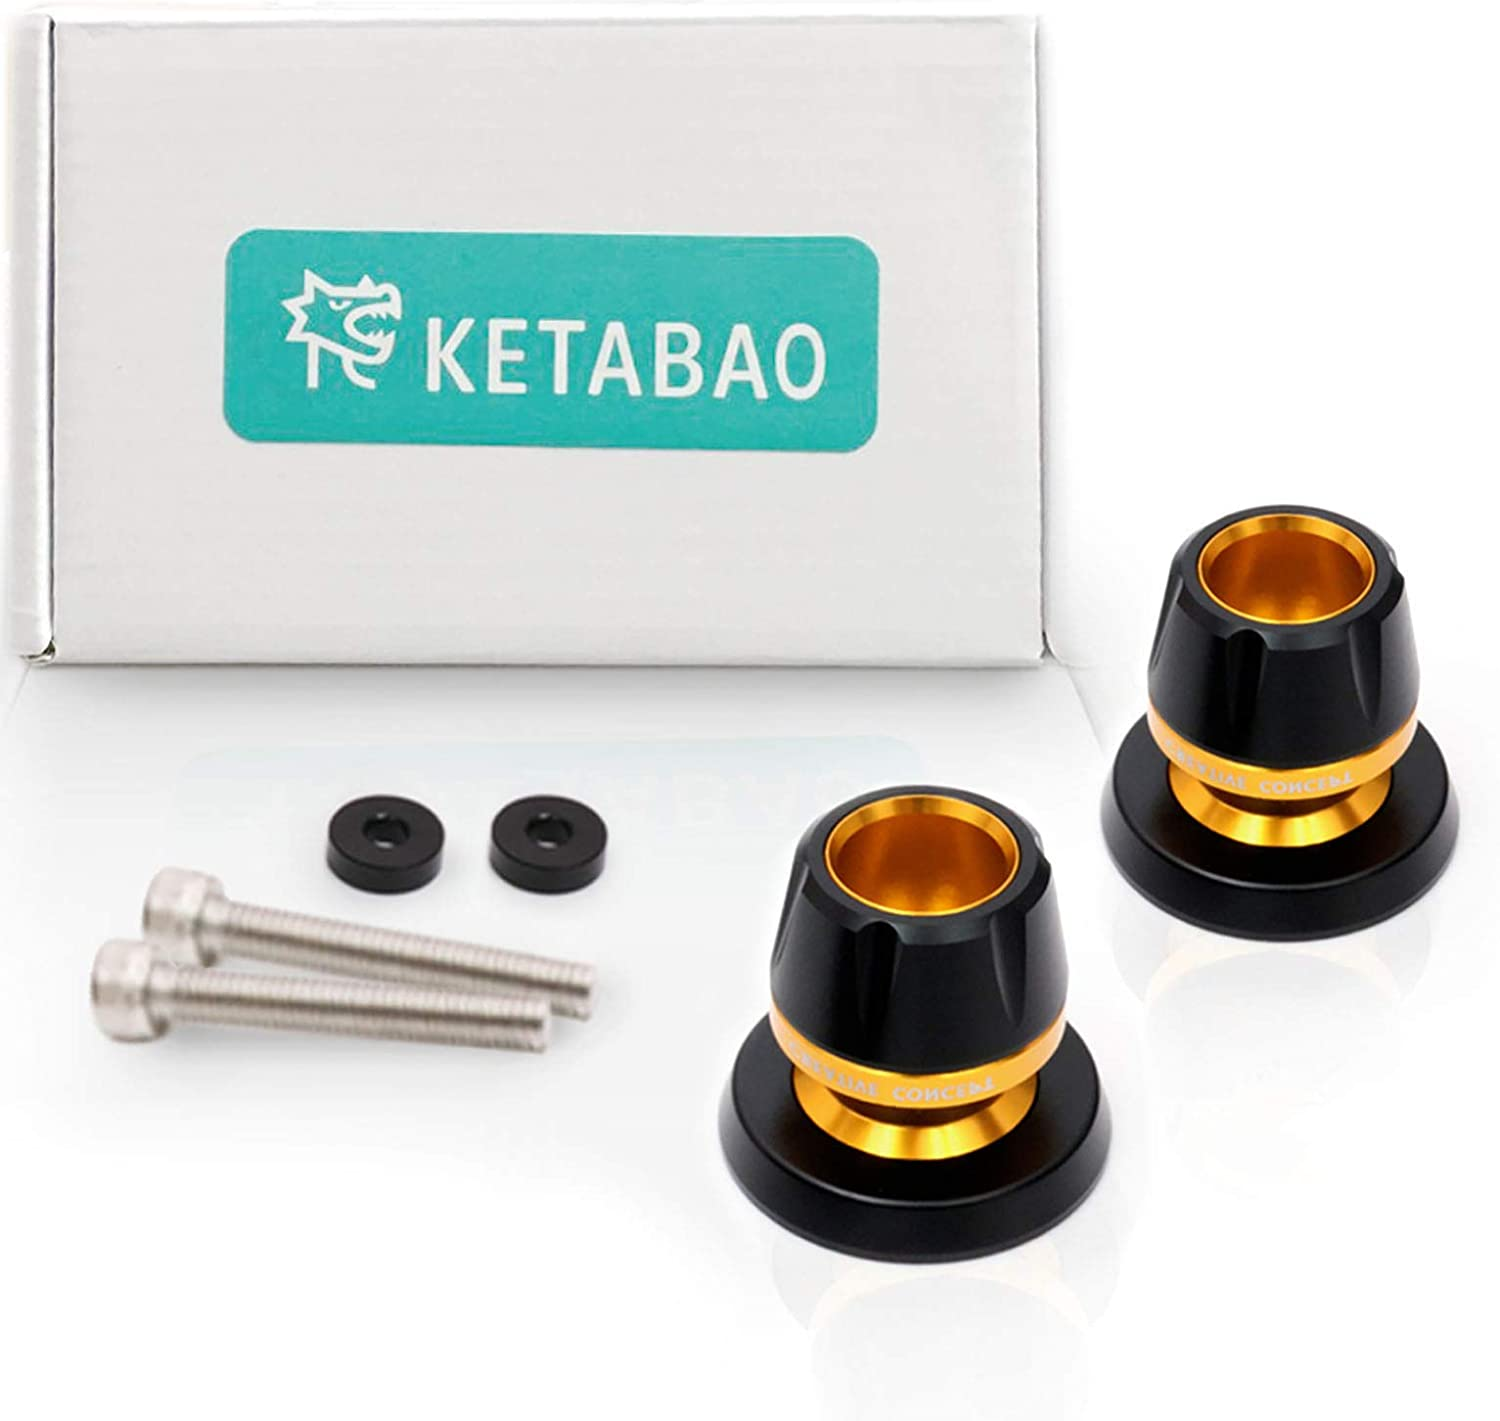 KETABAO Blue M6 Rear Swingarm Stand Spools Protectors For Yamaha MT-09 Tracer 13-17 YZF R3 MT01 05-12 MT03 YZF R6 16 17